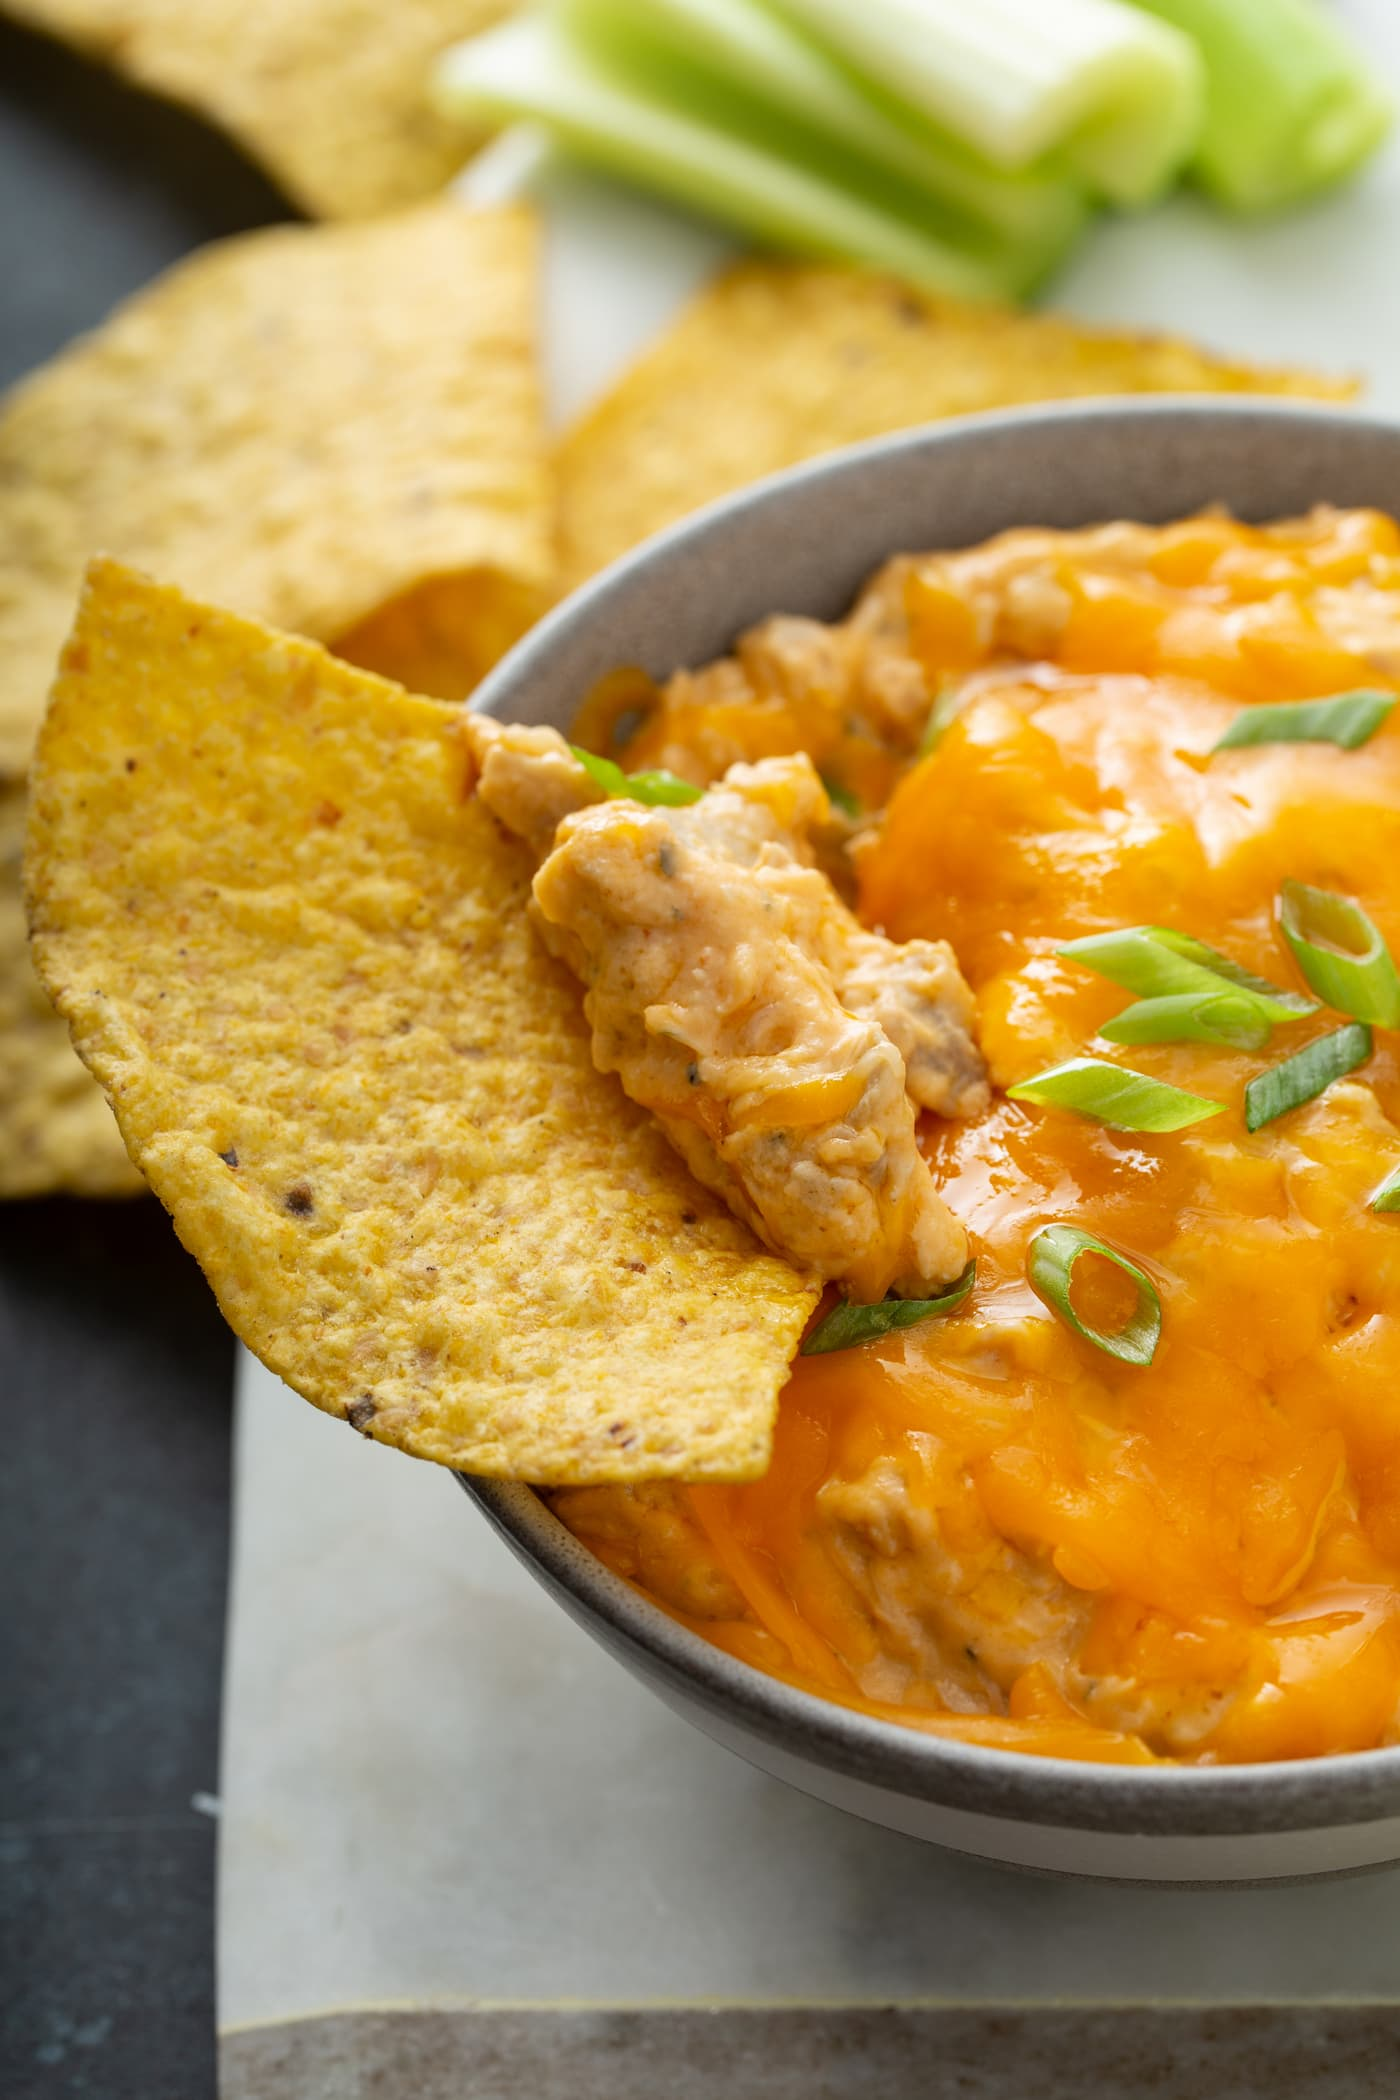 A chip being dipped into warm buffalo chicken dip. Cheese is melted on top, and there are chopped green onions sprinkled over the dip.